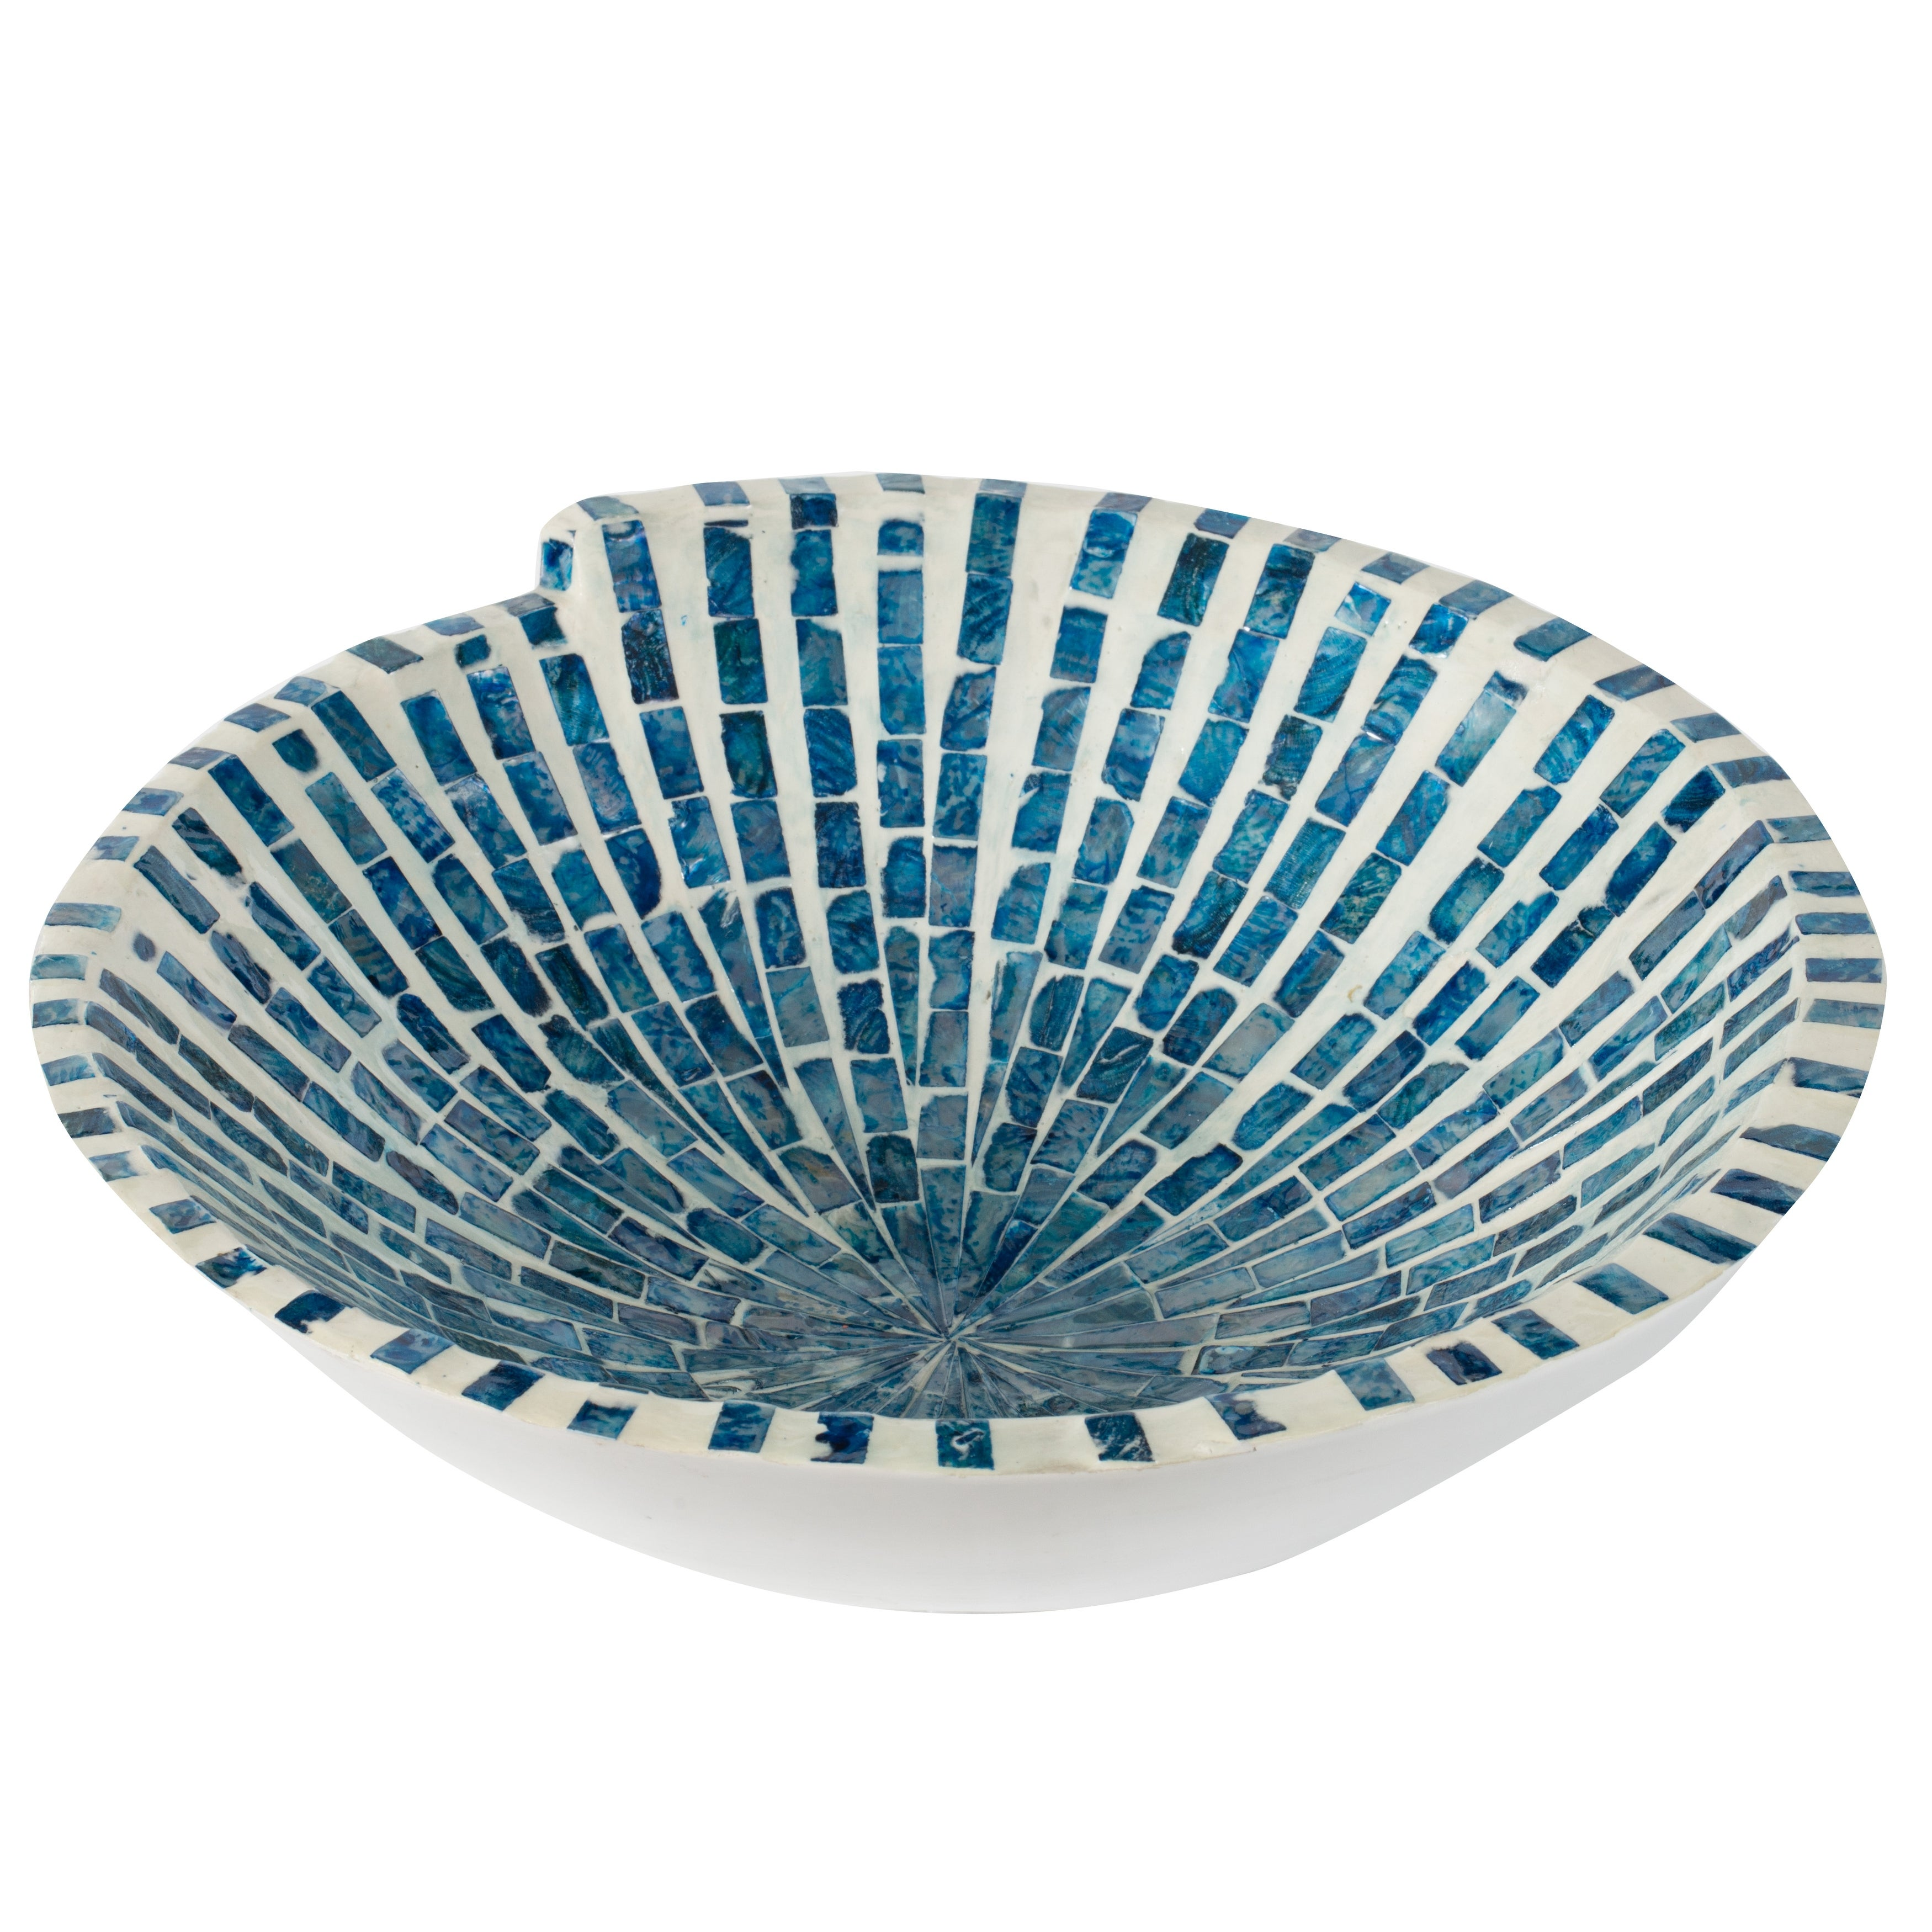 Costal And Cottage 15 Inch Pearl Blue And White Mosaic Tile Decorative Bowl Overstock 29660144